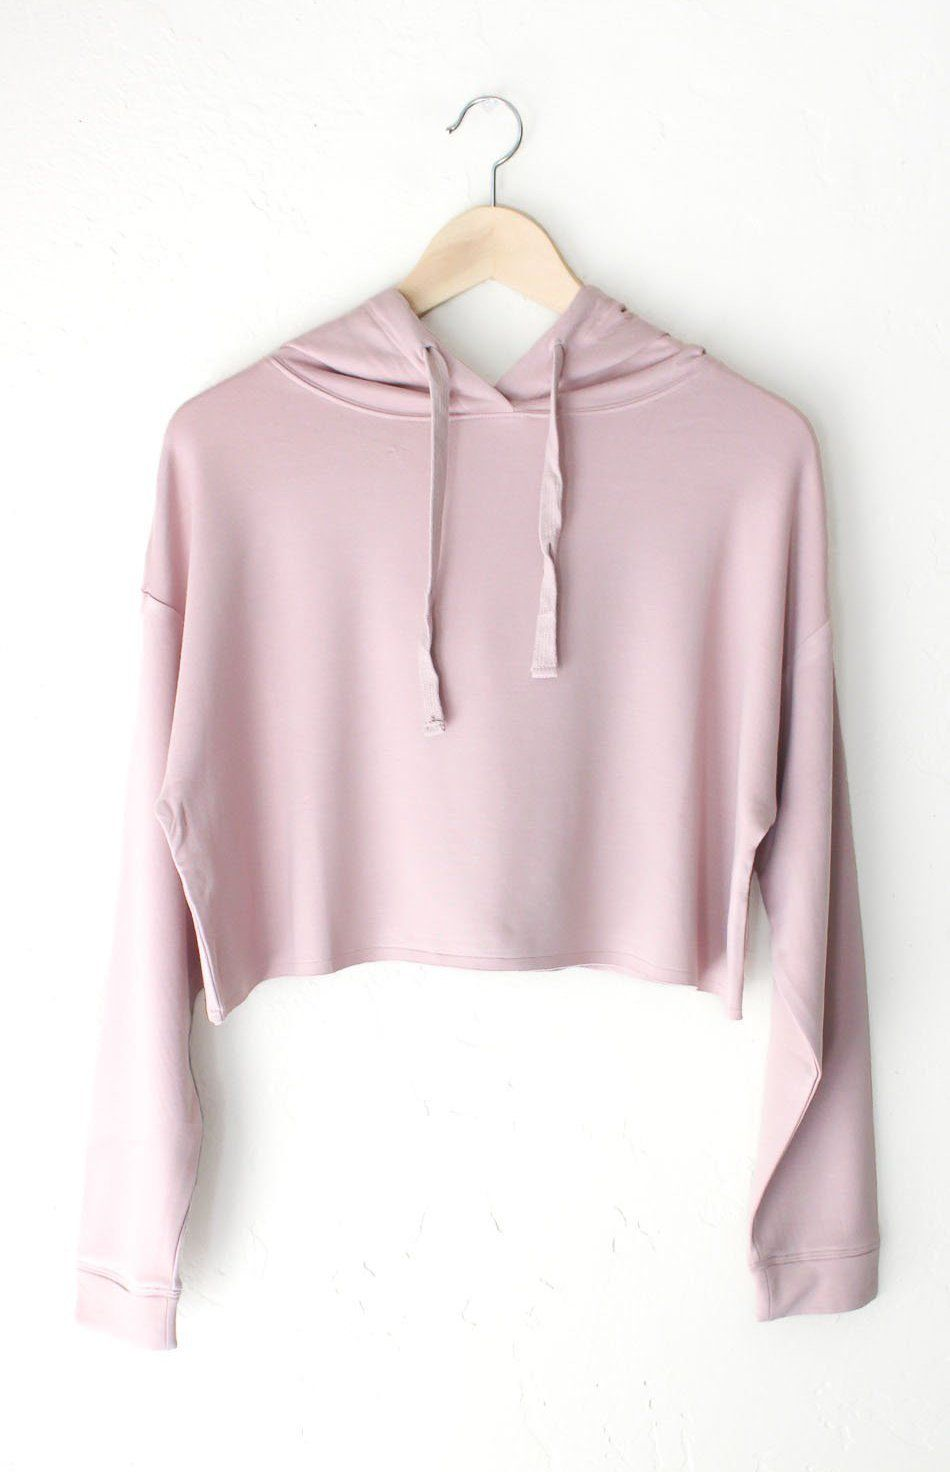 8ae71369 Dusty Pink Cropped Hoodie | Products | Ropa, Moda adolescente, Ropa ...